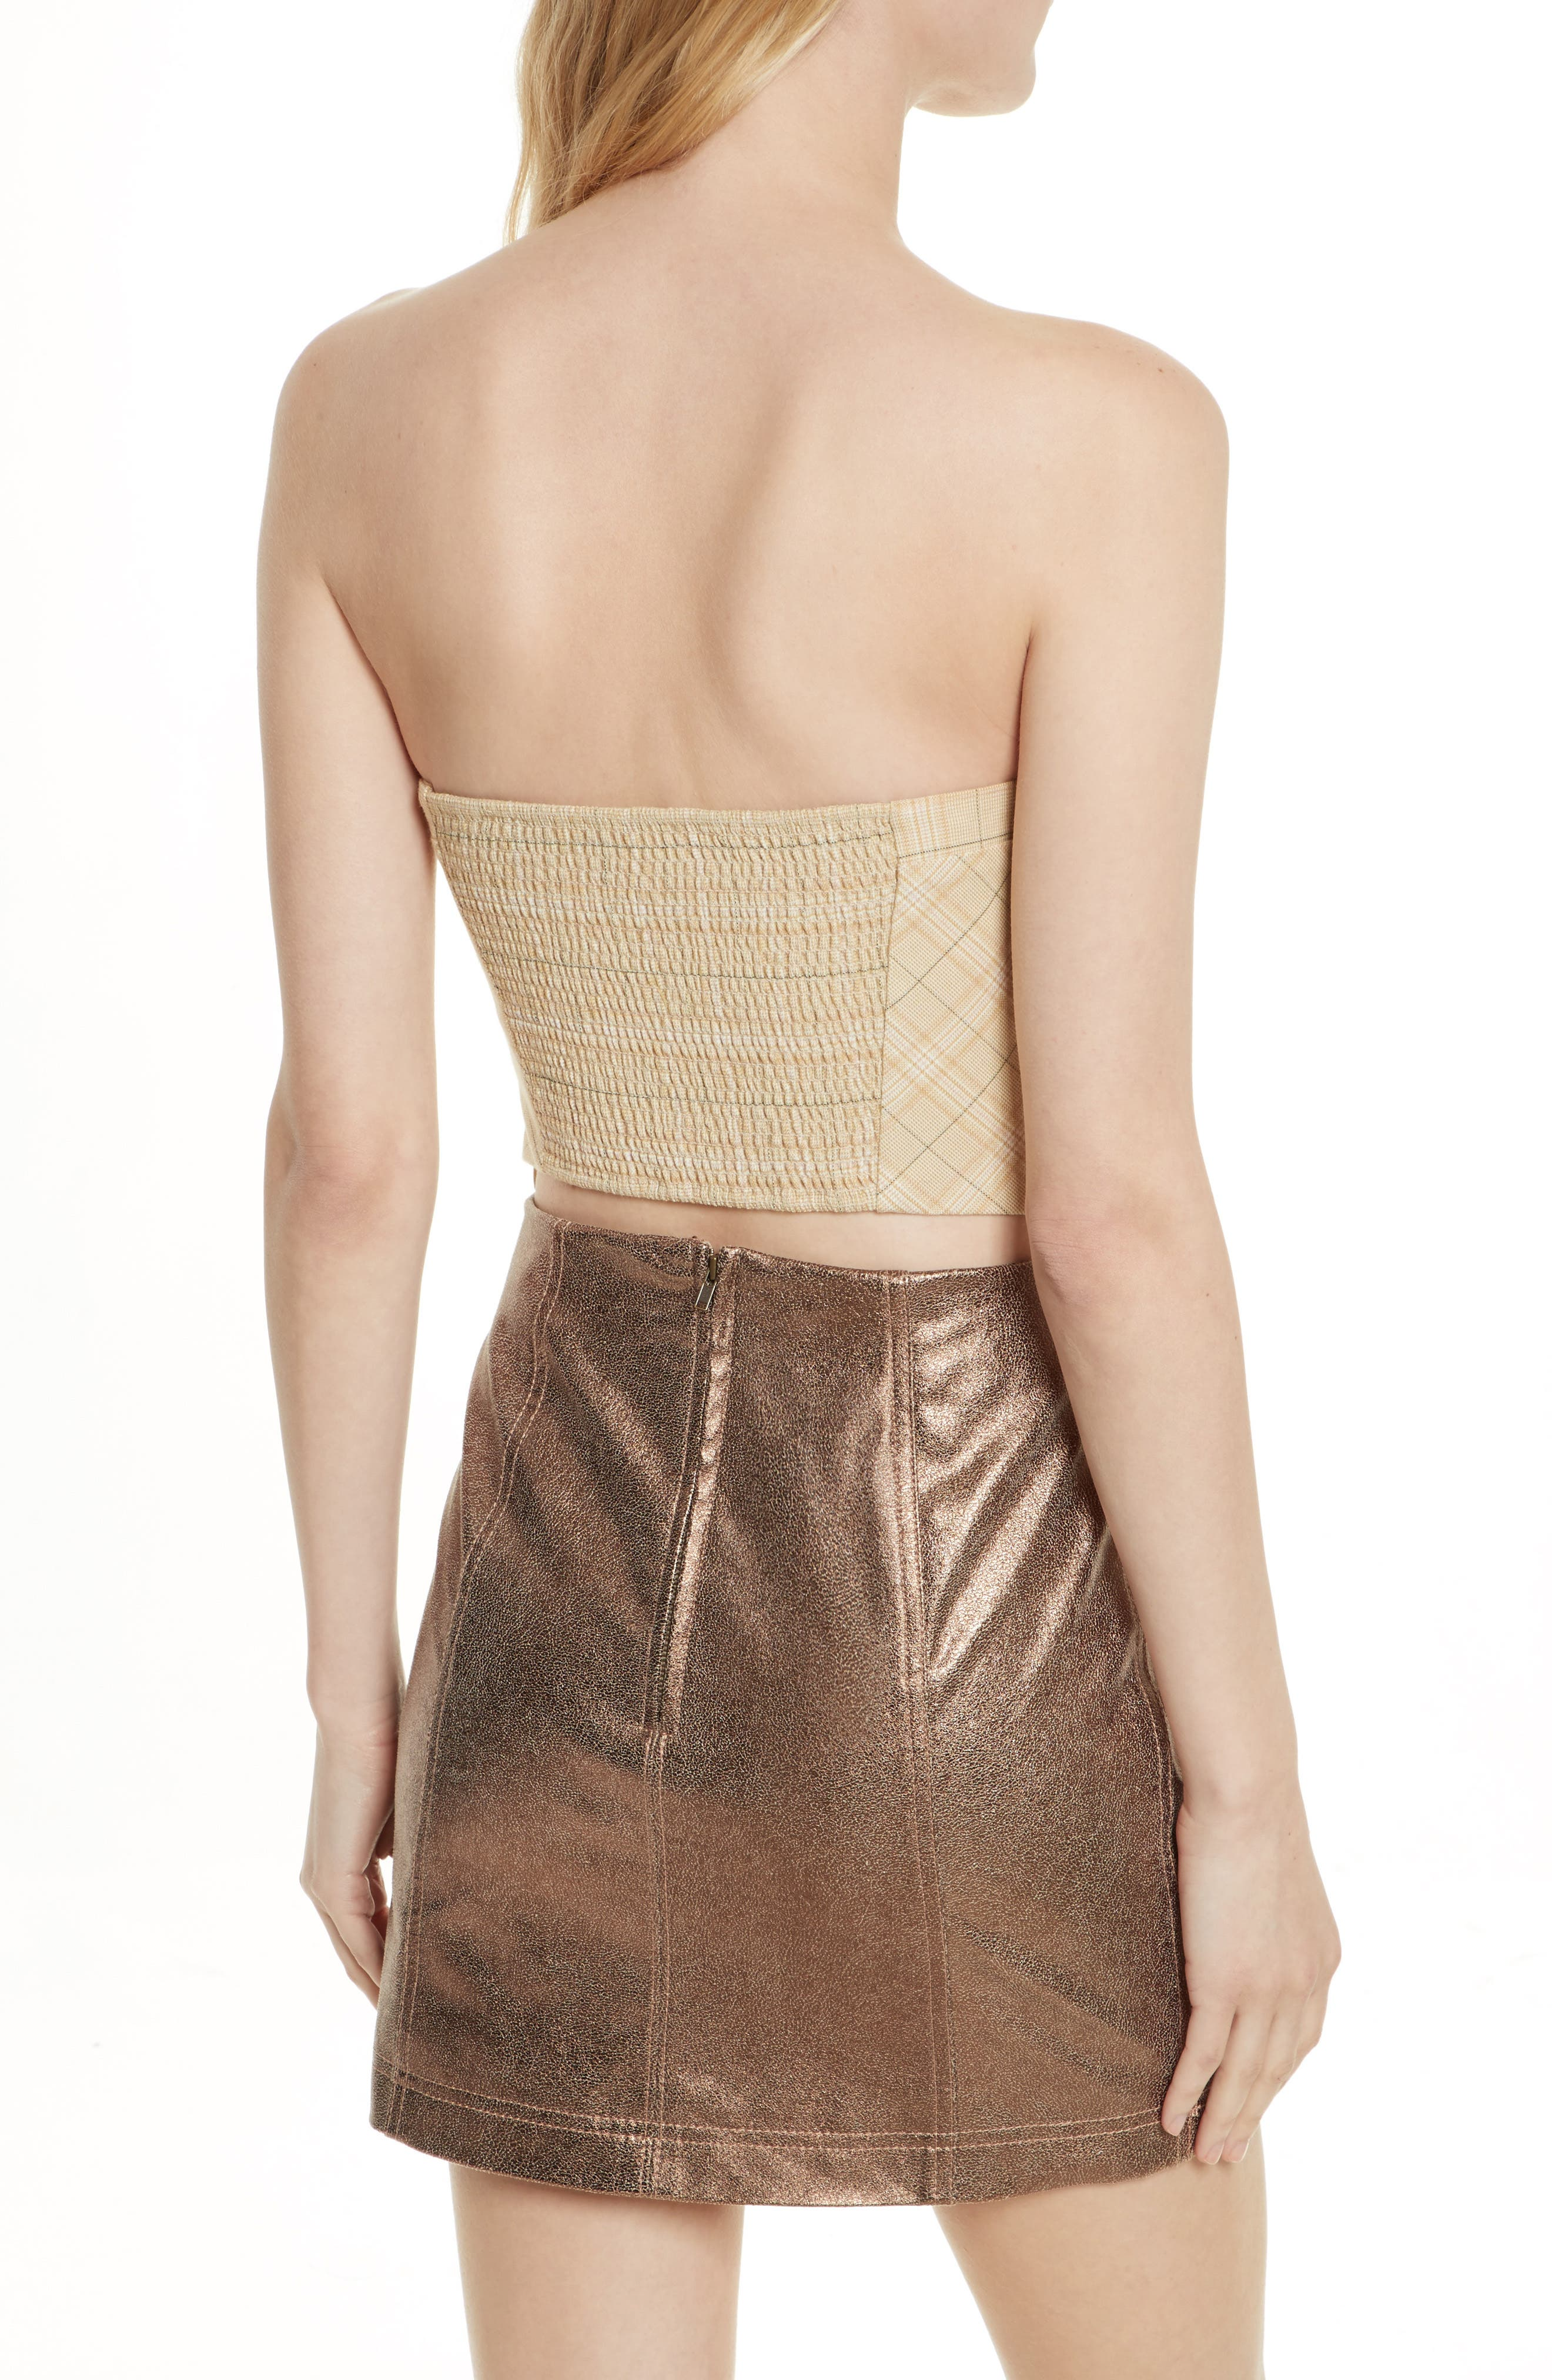 Out West Corset Top,                             Alternate thumbnail 4, color,                             Taupe